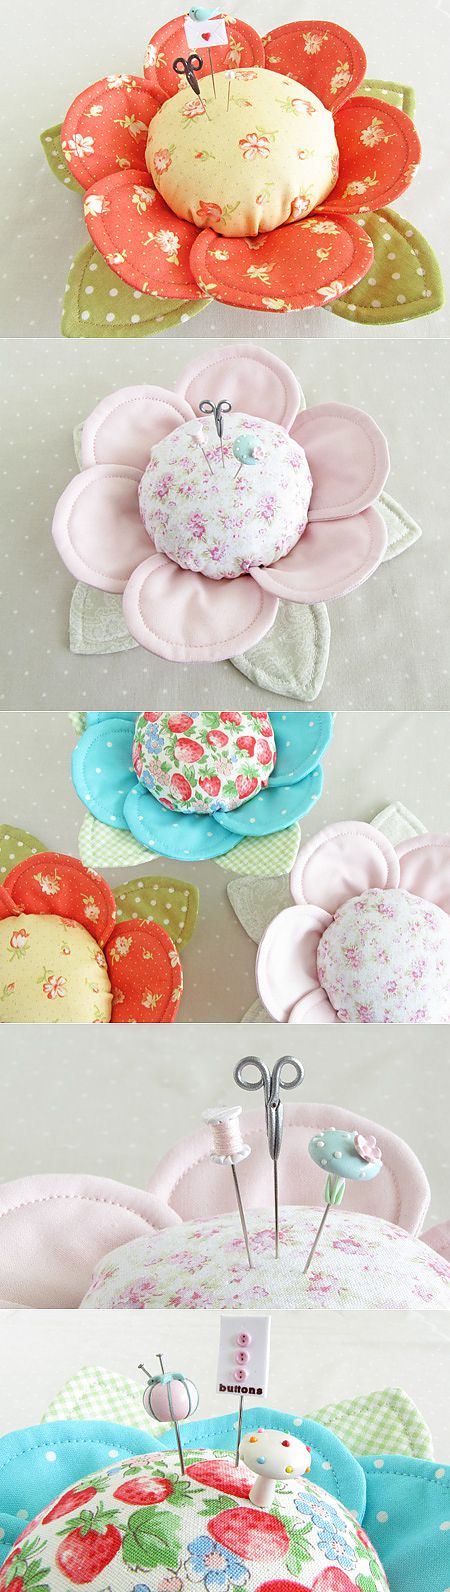 """""""With Fabric & Thread"""" Pin CushionButtercups - Pretty by Hand - Pretty By Hand"""